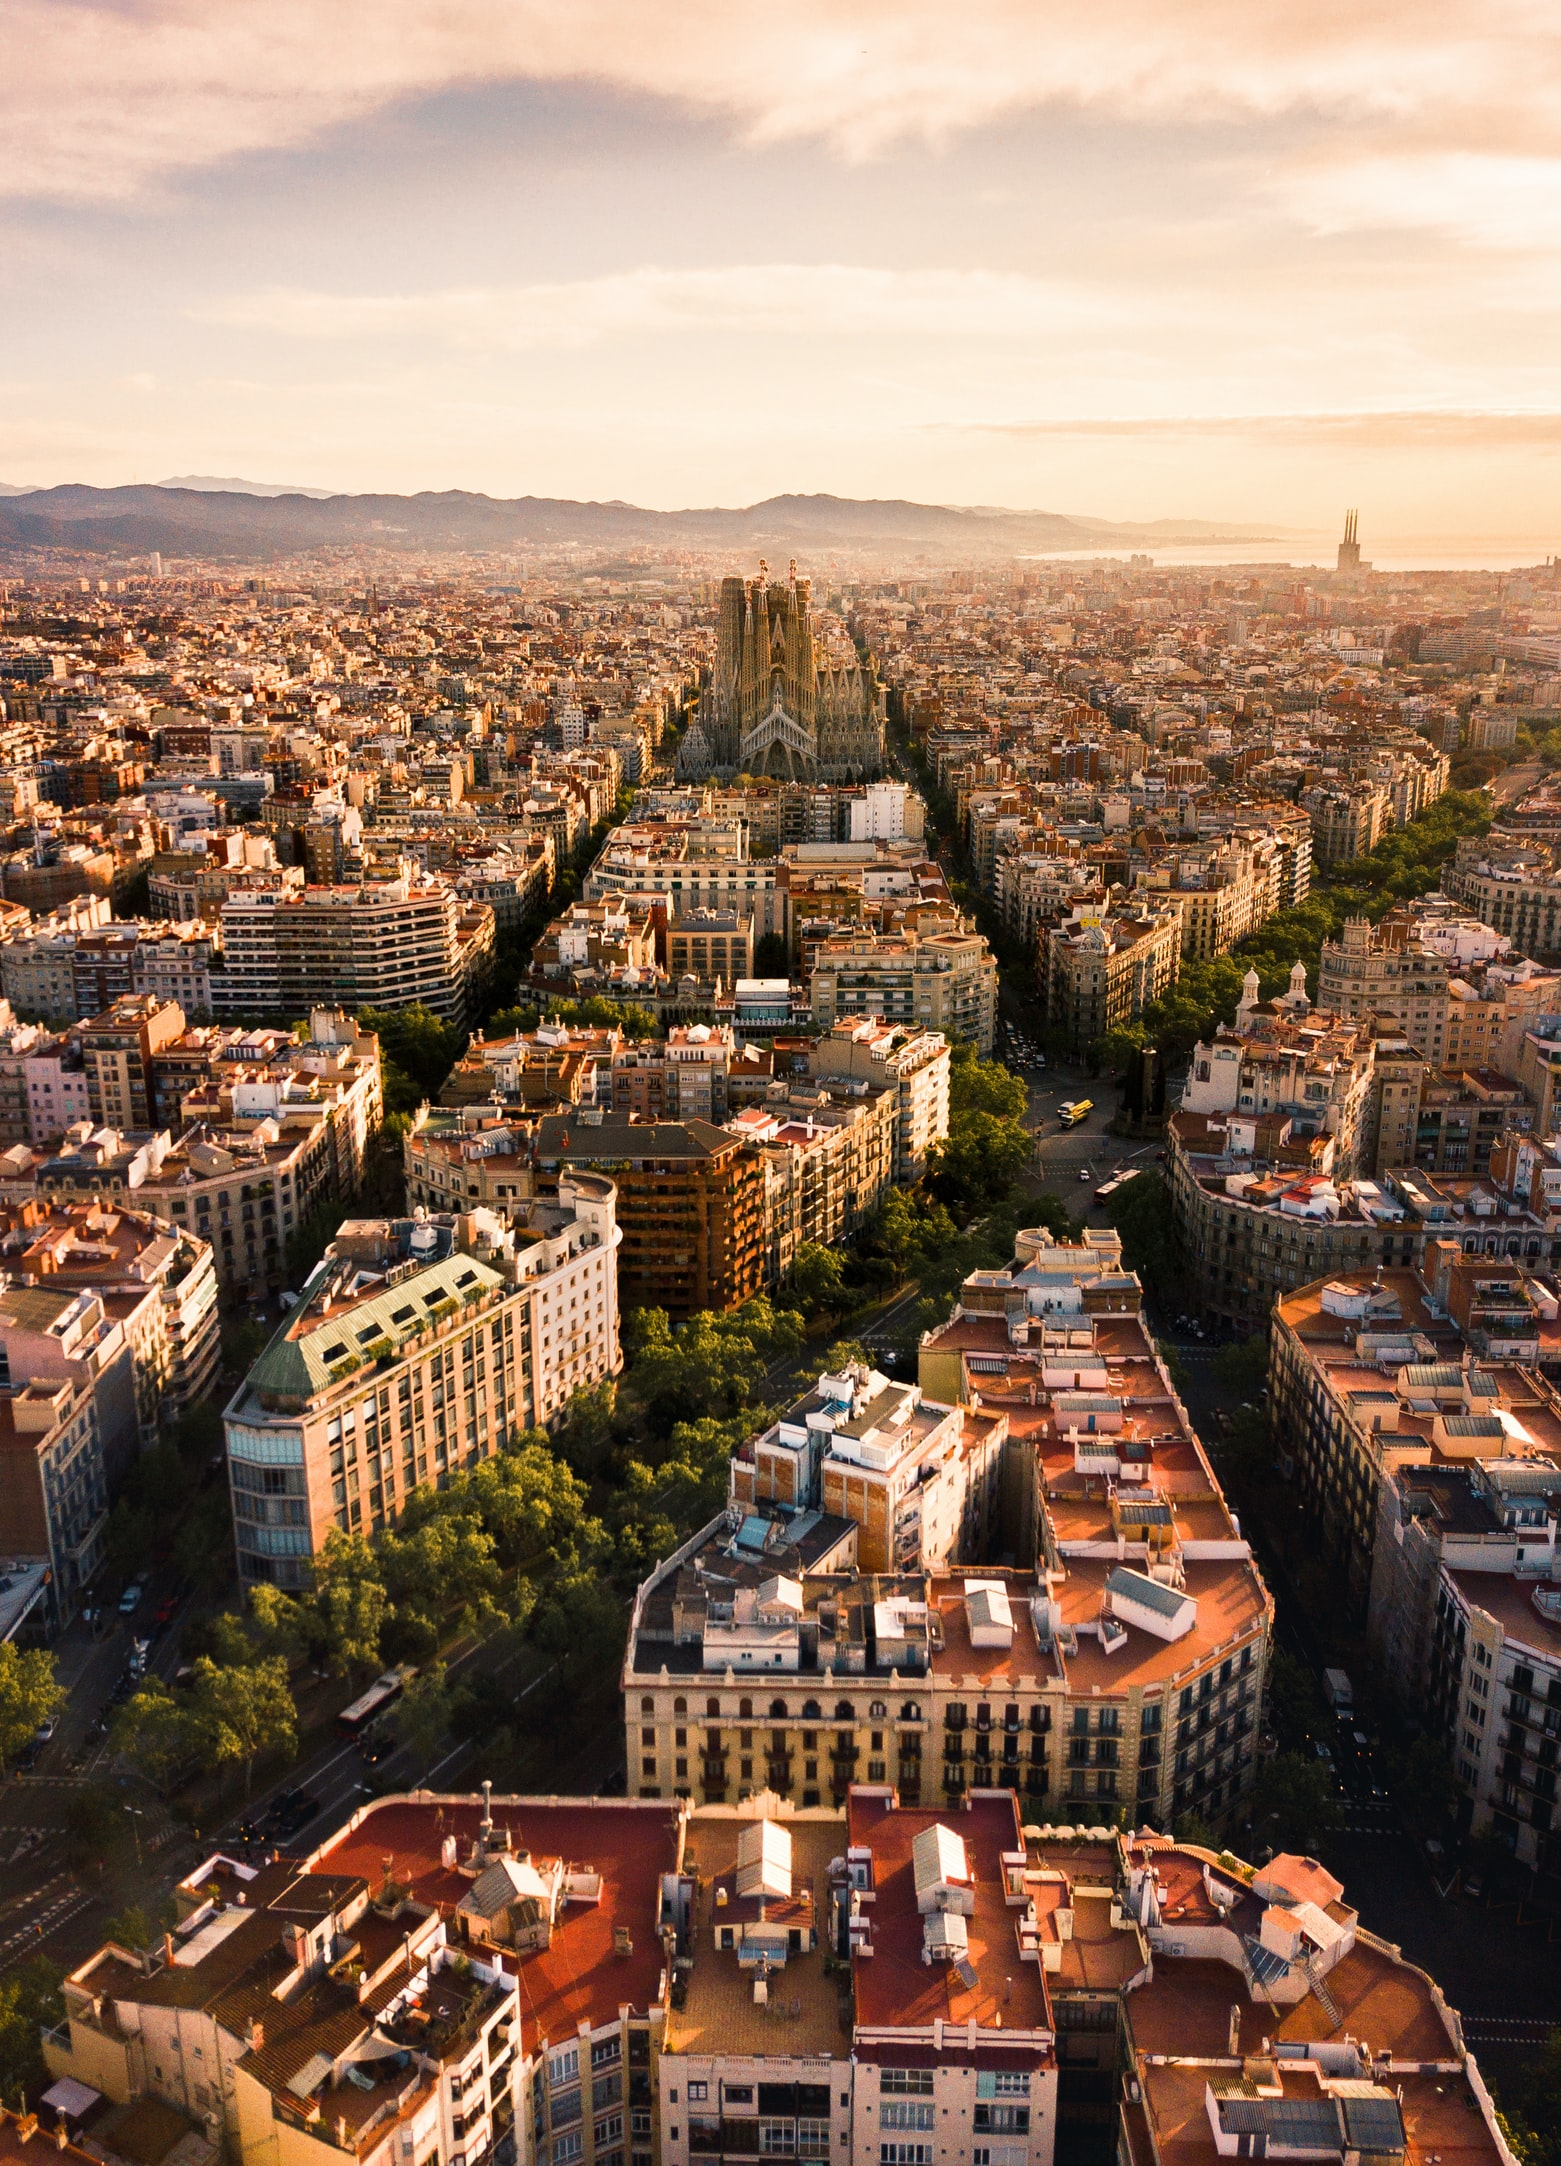 Walk Around The Plazas In Barcelona To Know More About The City